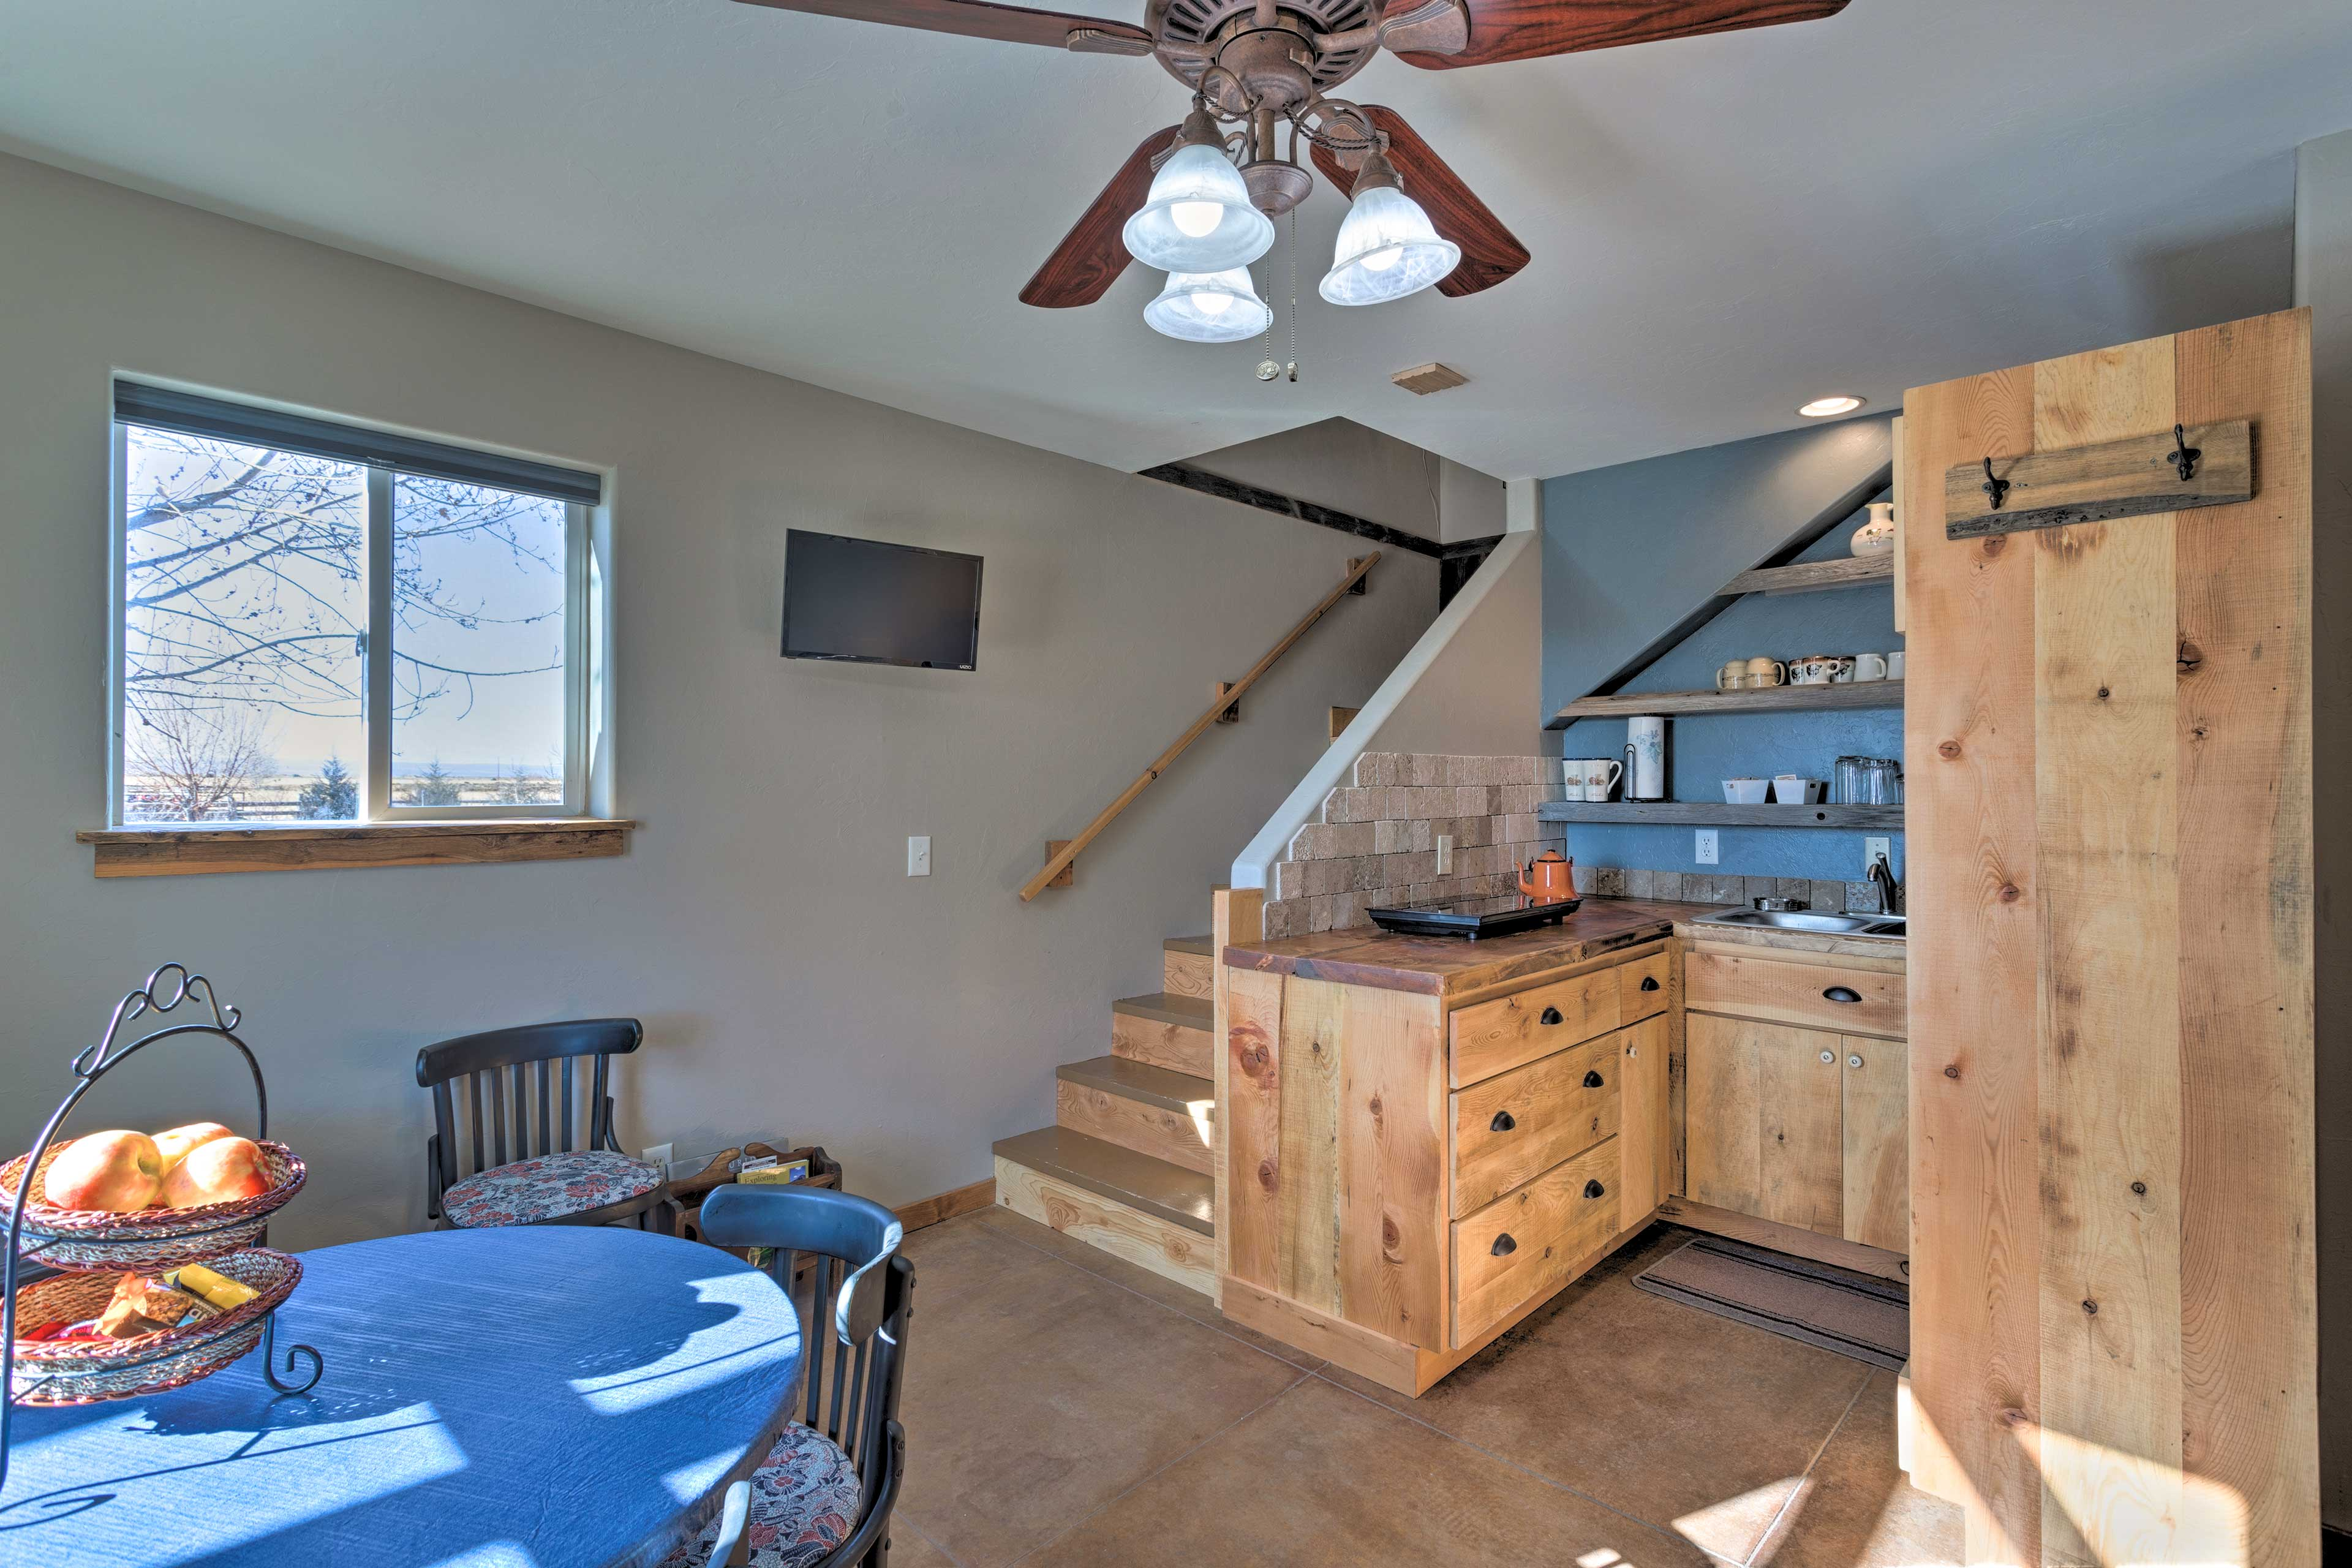 This vacation rental features a well-equipped kitchen.